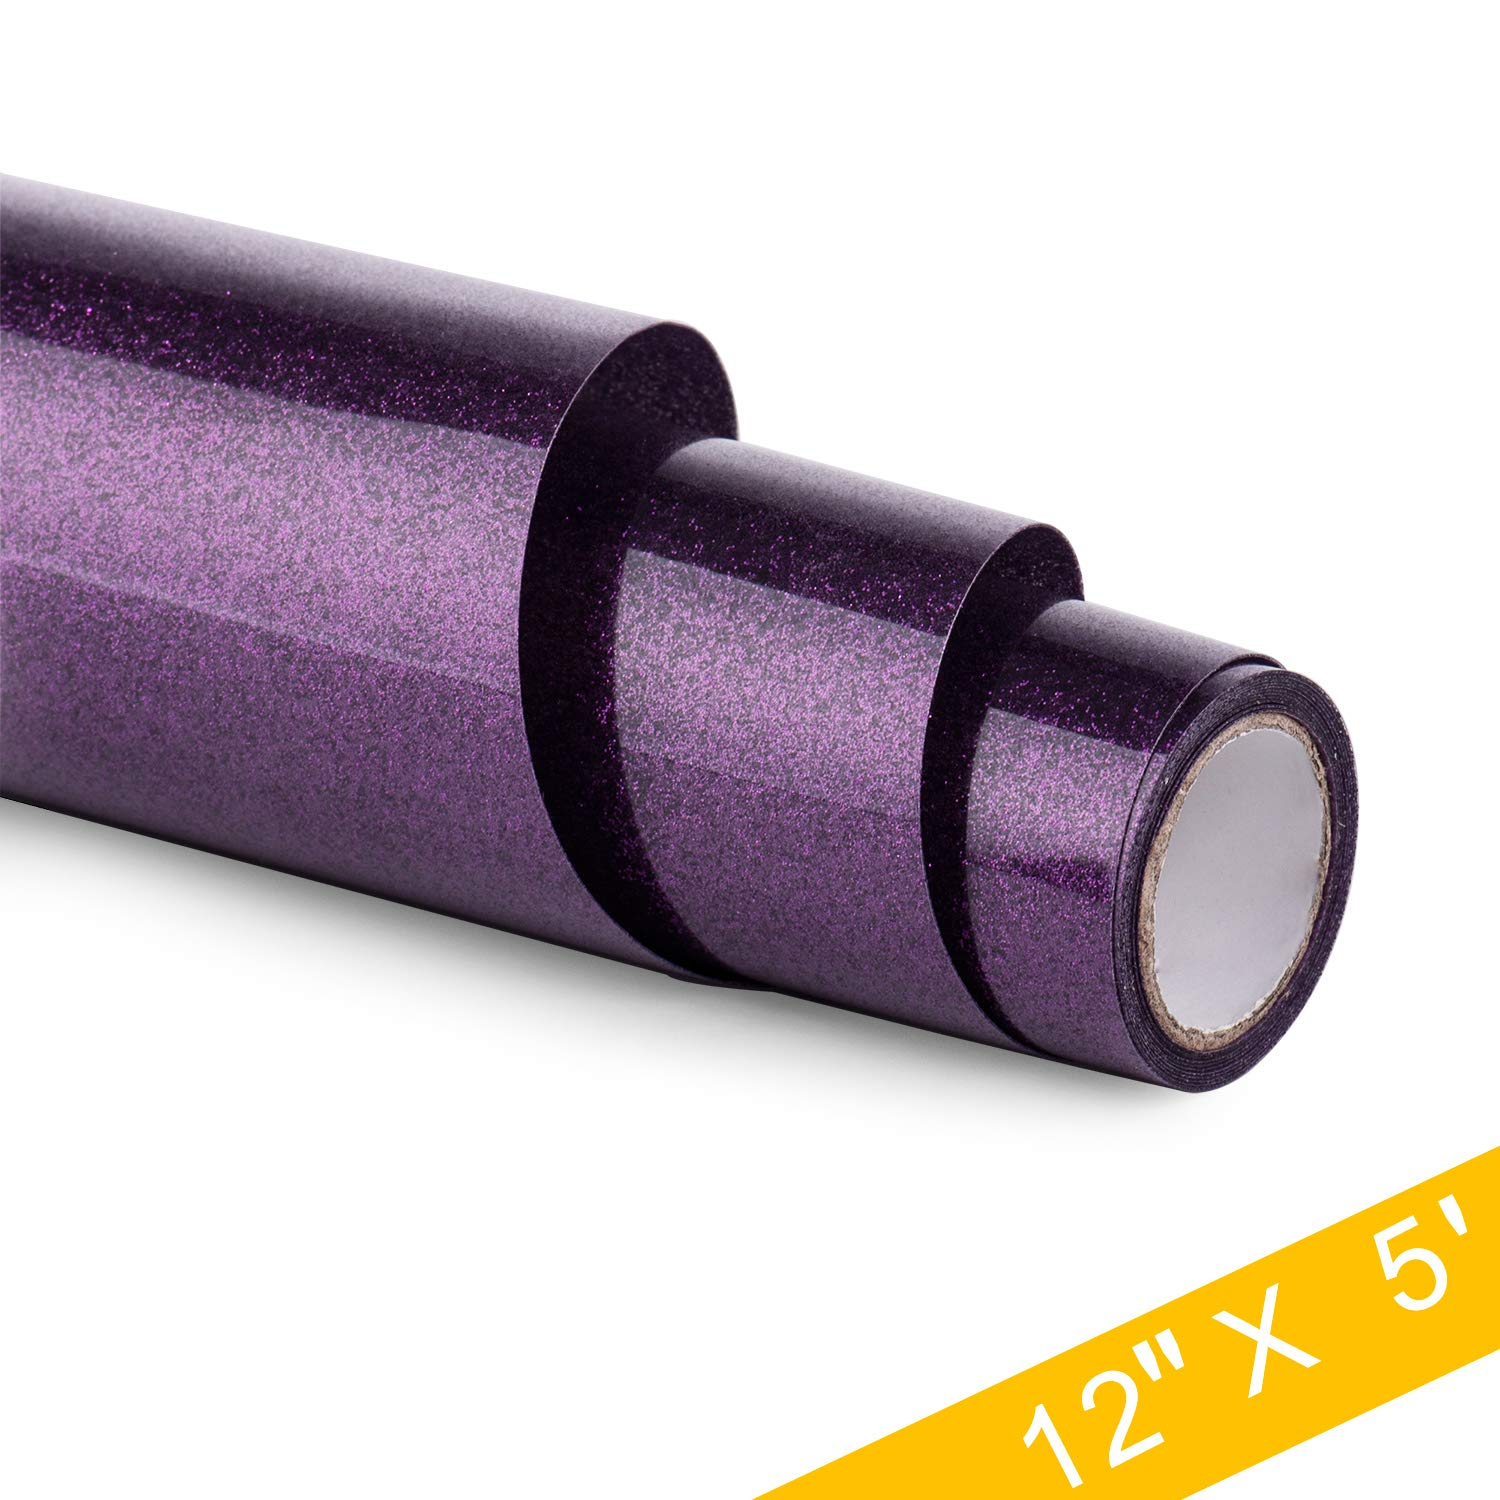 HenPisen Glitter HTV Vinyl - 12'' x 5ft PU Heat Transfer Vinyl roll, Iron On Vinyl for Cricut & Silhouette Cameo Easy to Cut & Weed, Durable,Vibrant Color Design for T-Shirt and Other Textiles(Purple) by HenPisen